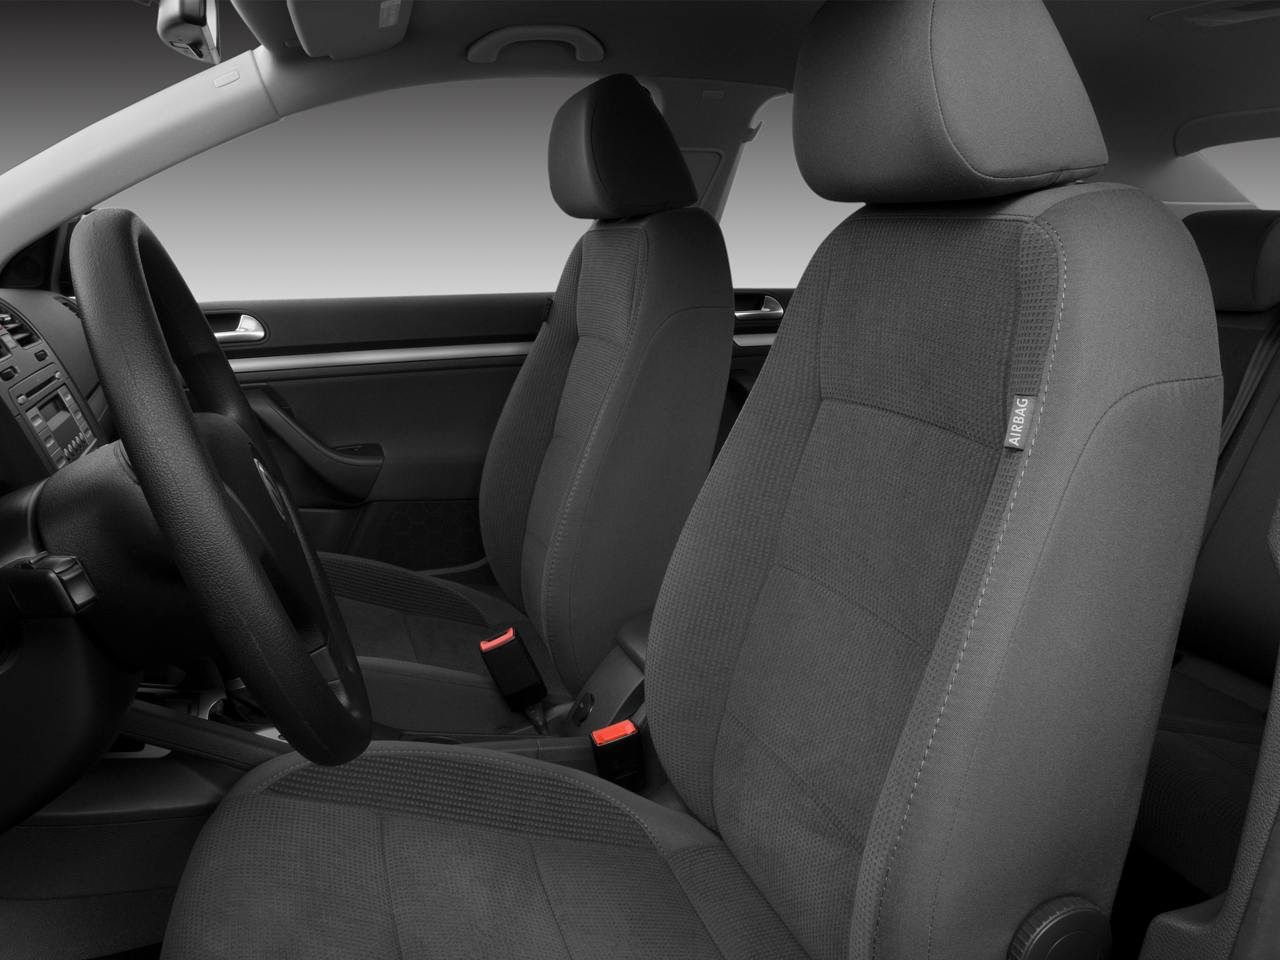 2016 ford mustang interior u s news amp world report - 49 68